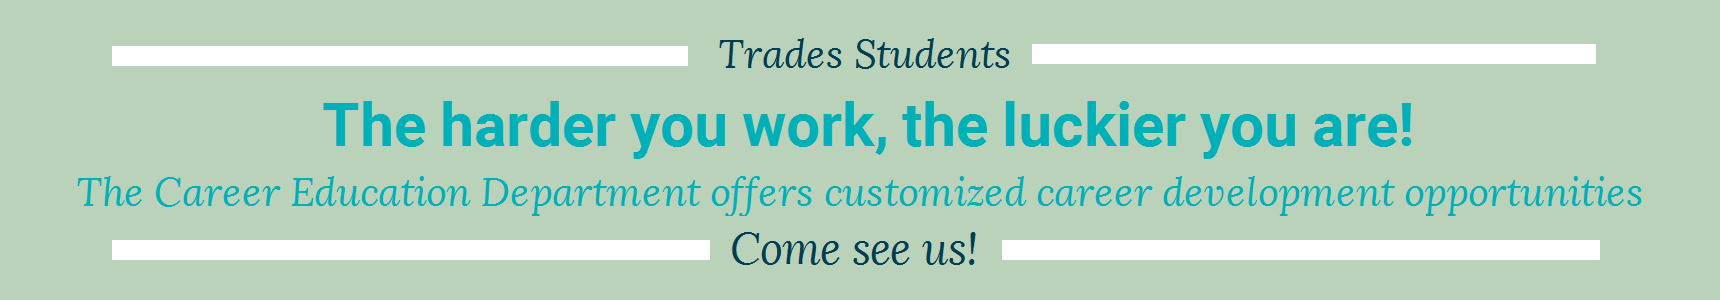 Trades Students